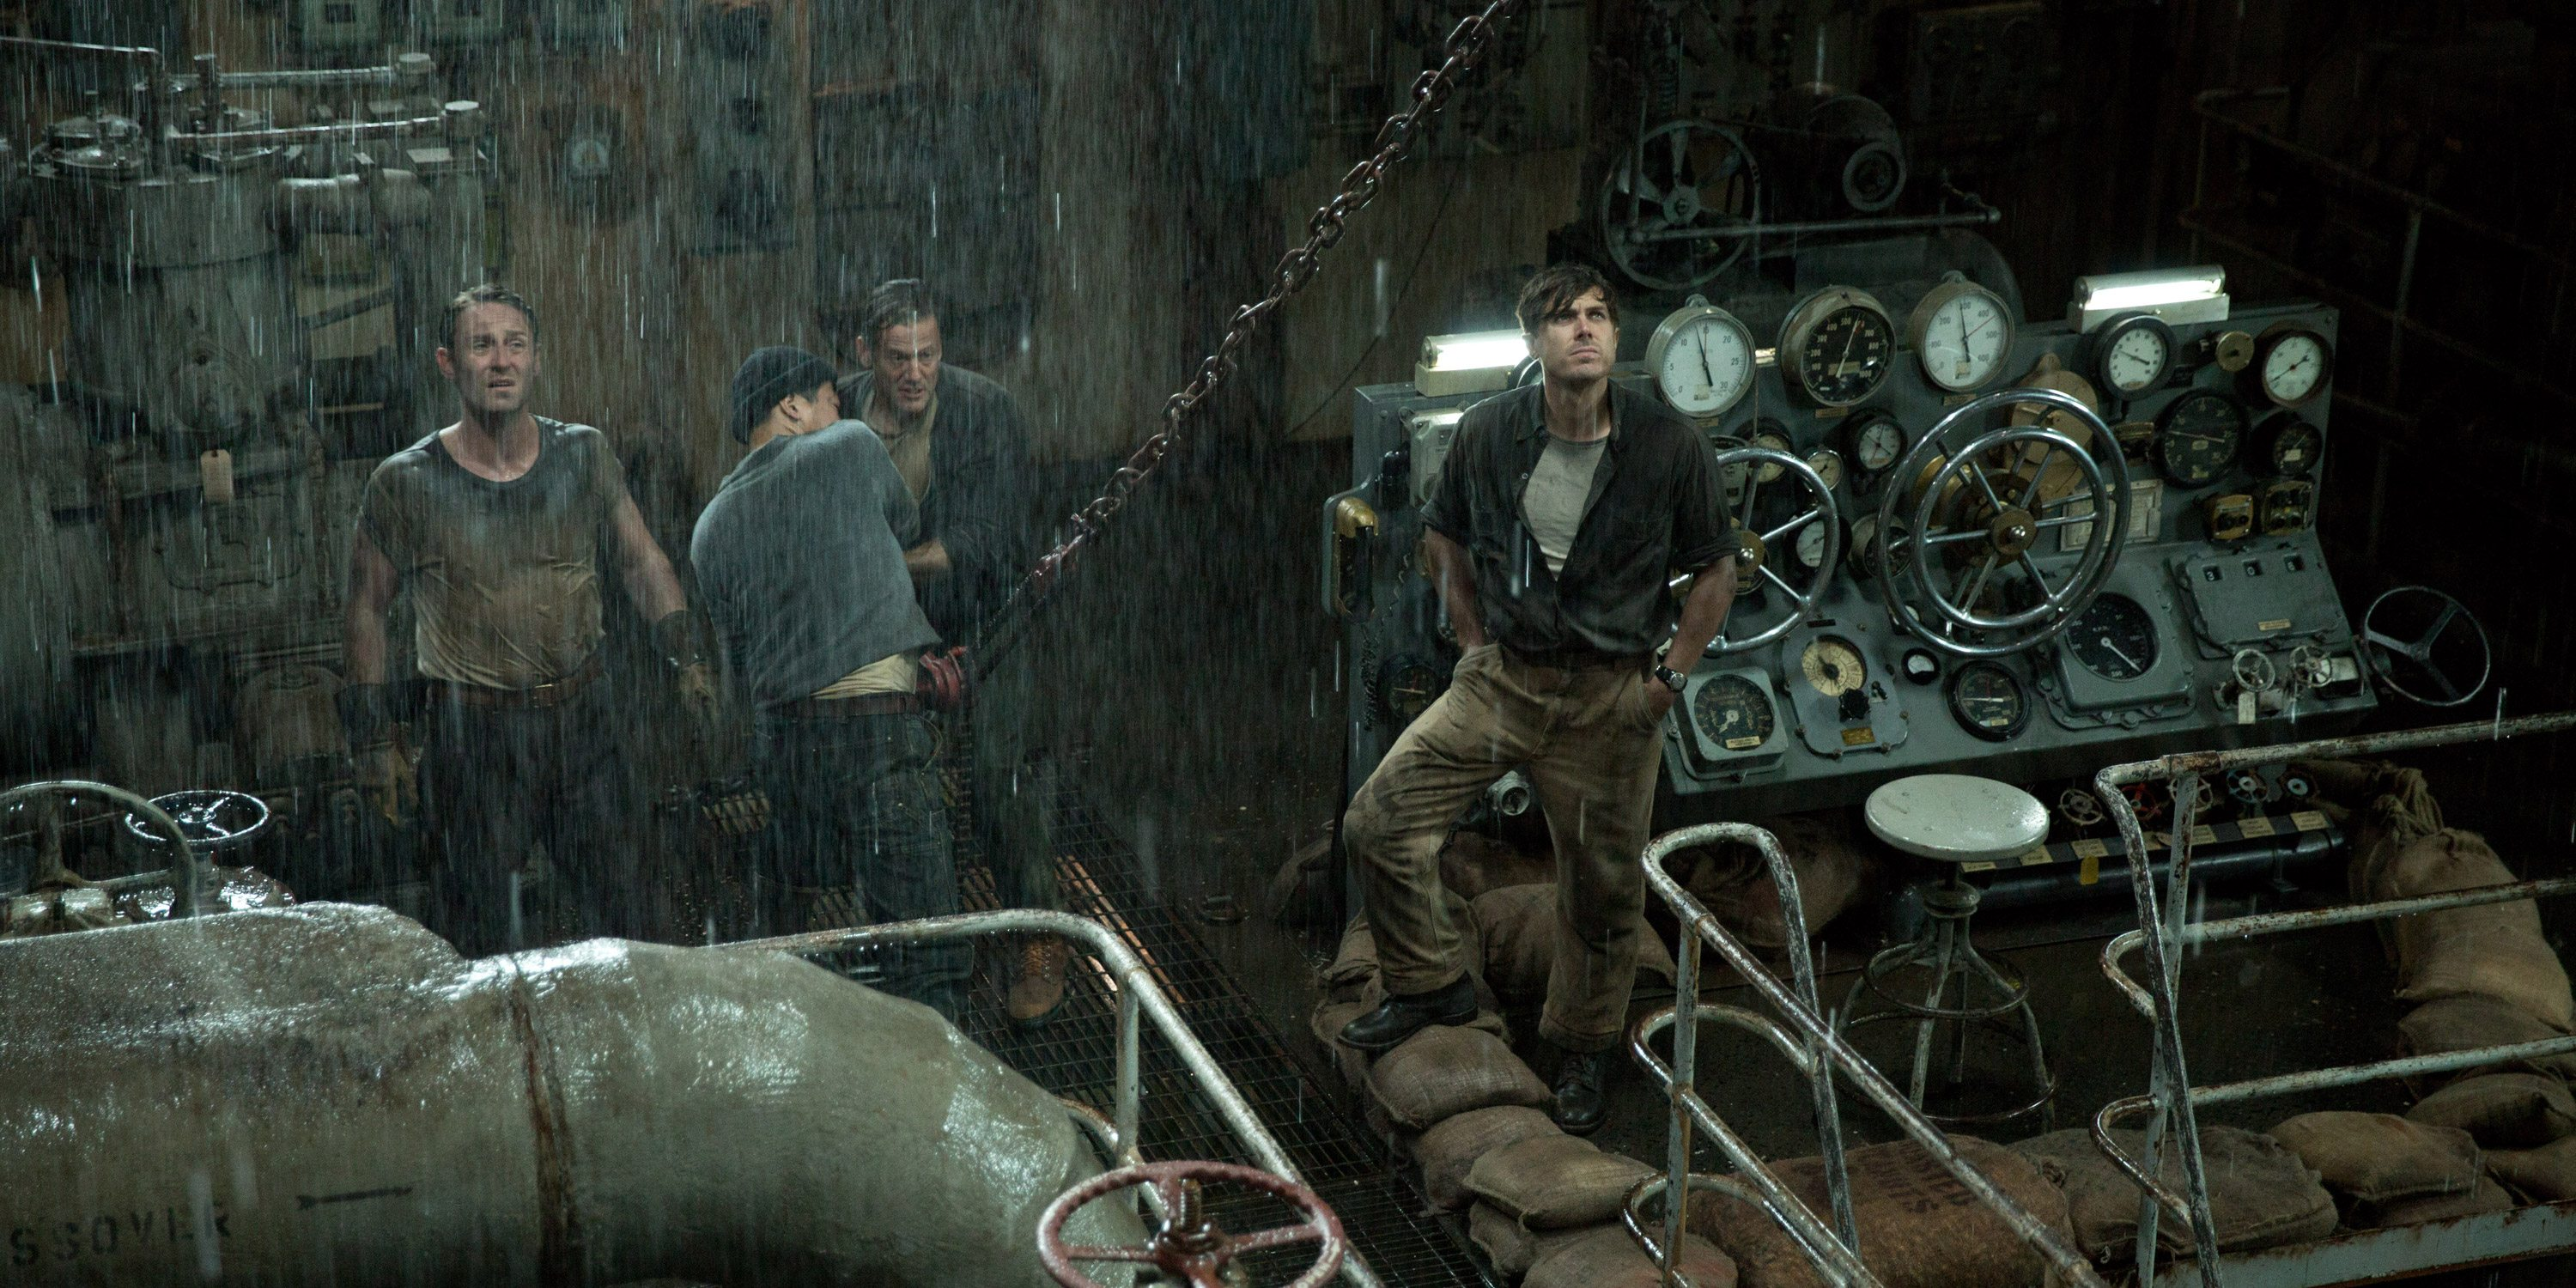 8 Things Parents Should Know About 'The Finest Hours'